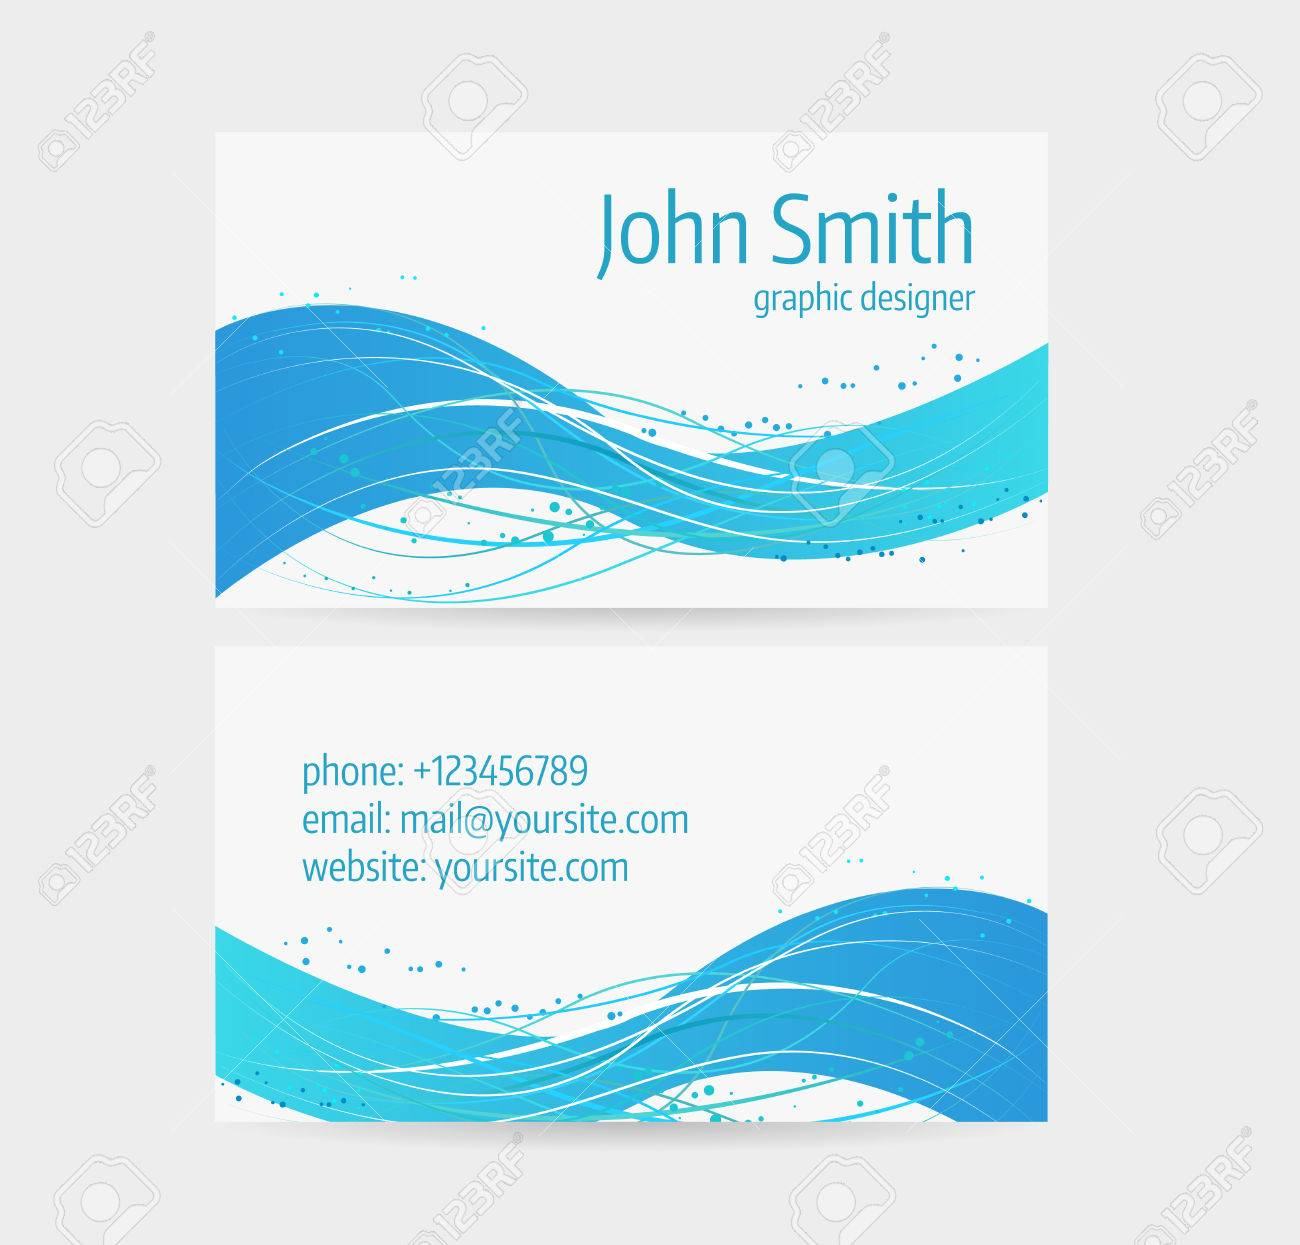 Business card template front and back side blue abstract wave business card template front and back side blue abstract wave design stock vector colourmoves